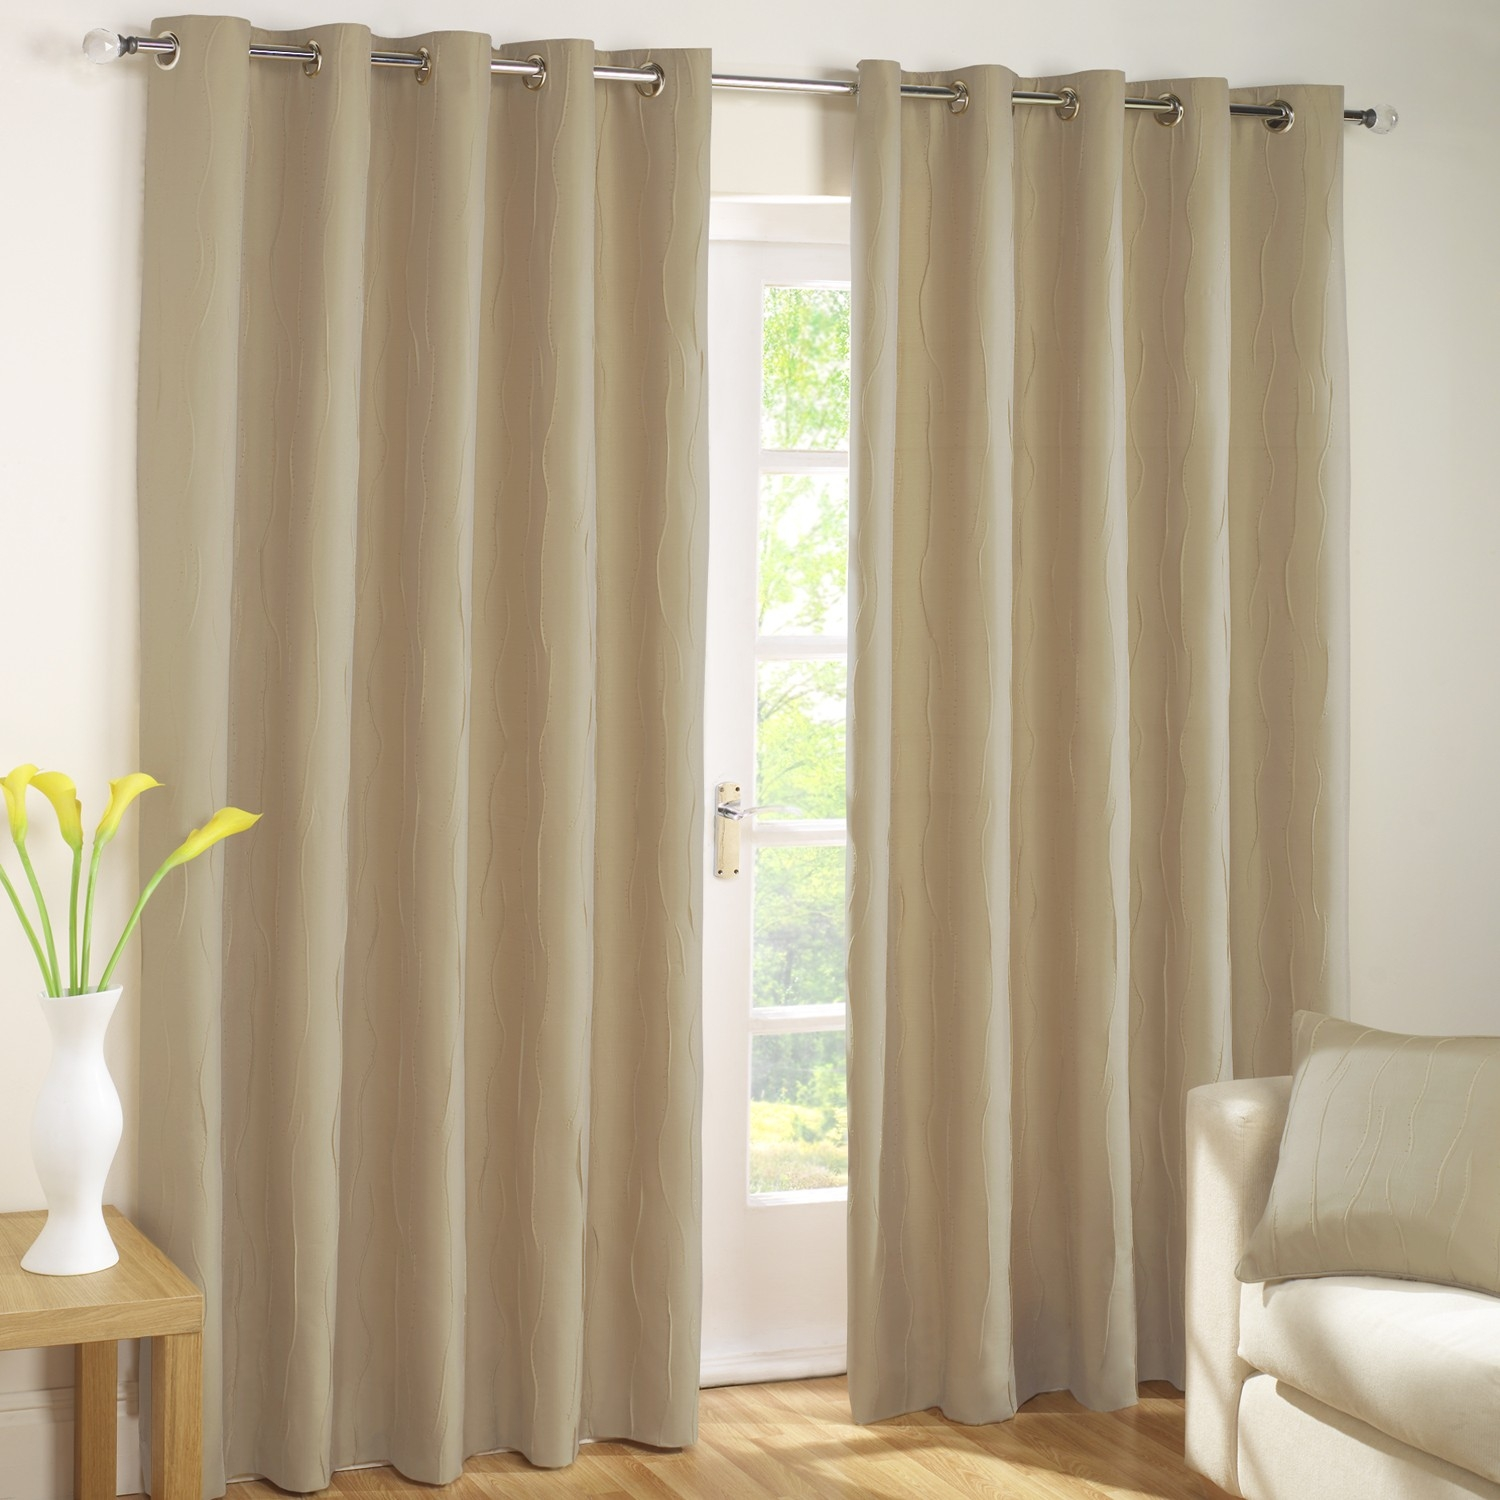 Jazz Linen Lined Eyelet Curtains Pair Julian Charles Regarding Cream And Gold Eyelet Curtains (Image 11 of 15)